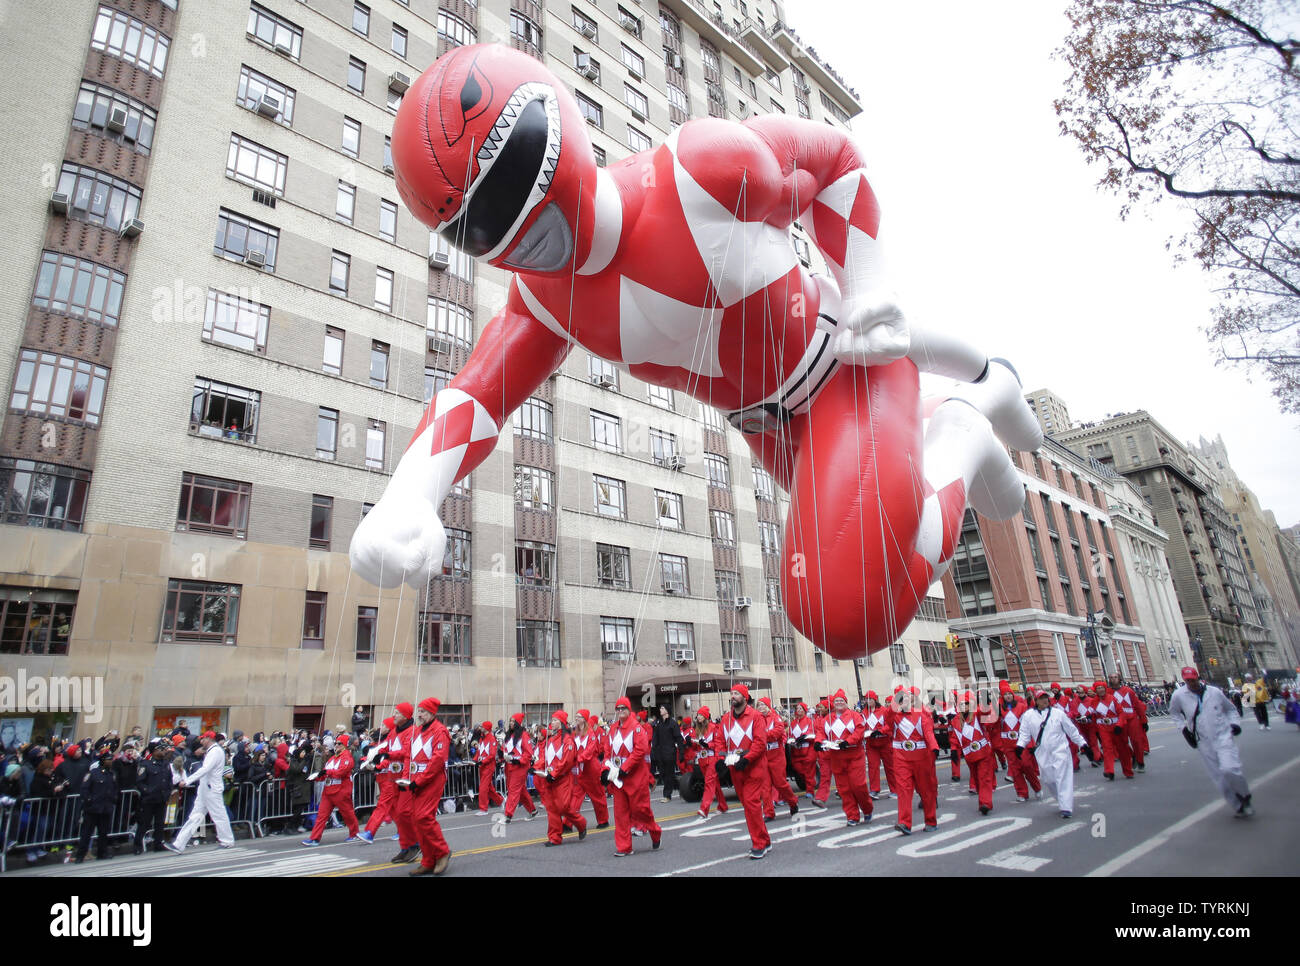 The Red Mighty Morphin Power Ranger balloon moves down the parade route at the 90th Macy's Thanksgiving Day Parade in New York City on November 24, 2016.     Photo by John Angelillo/UPI - Stock Image